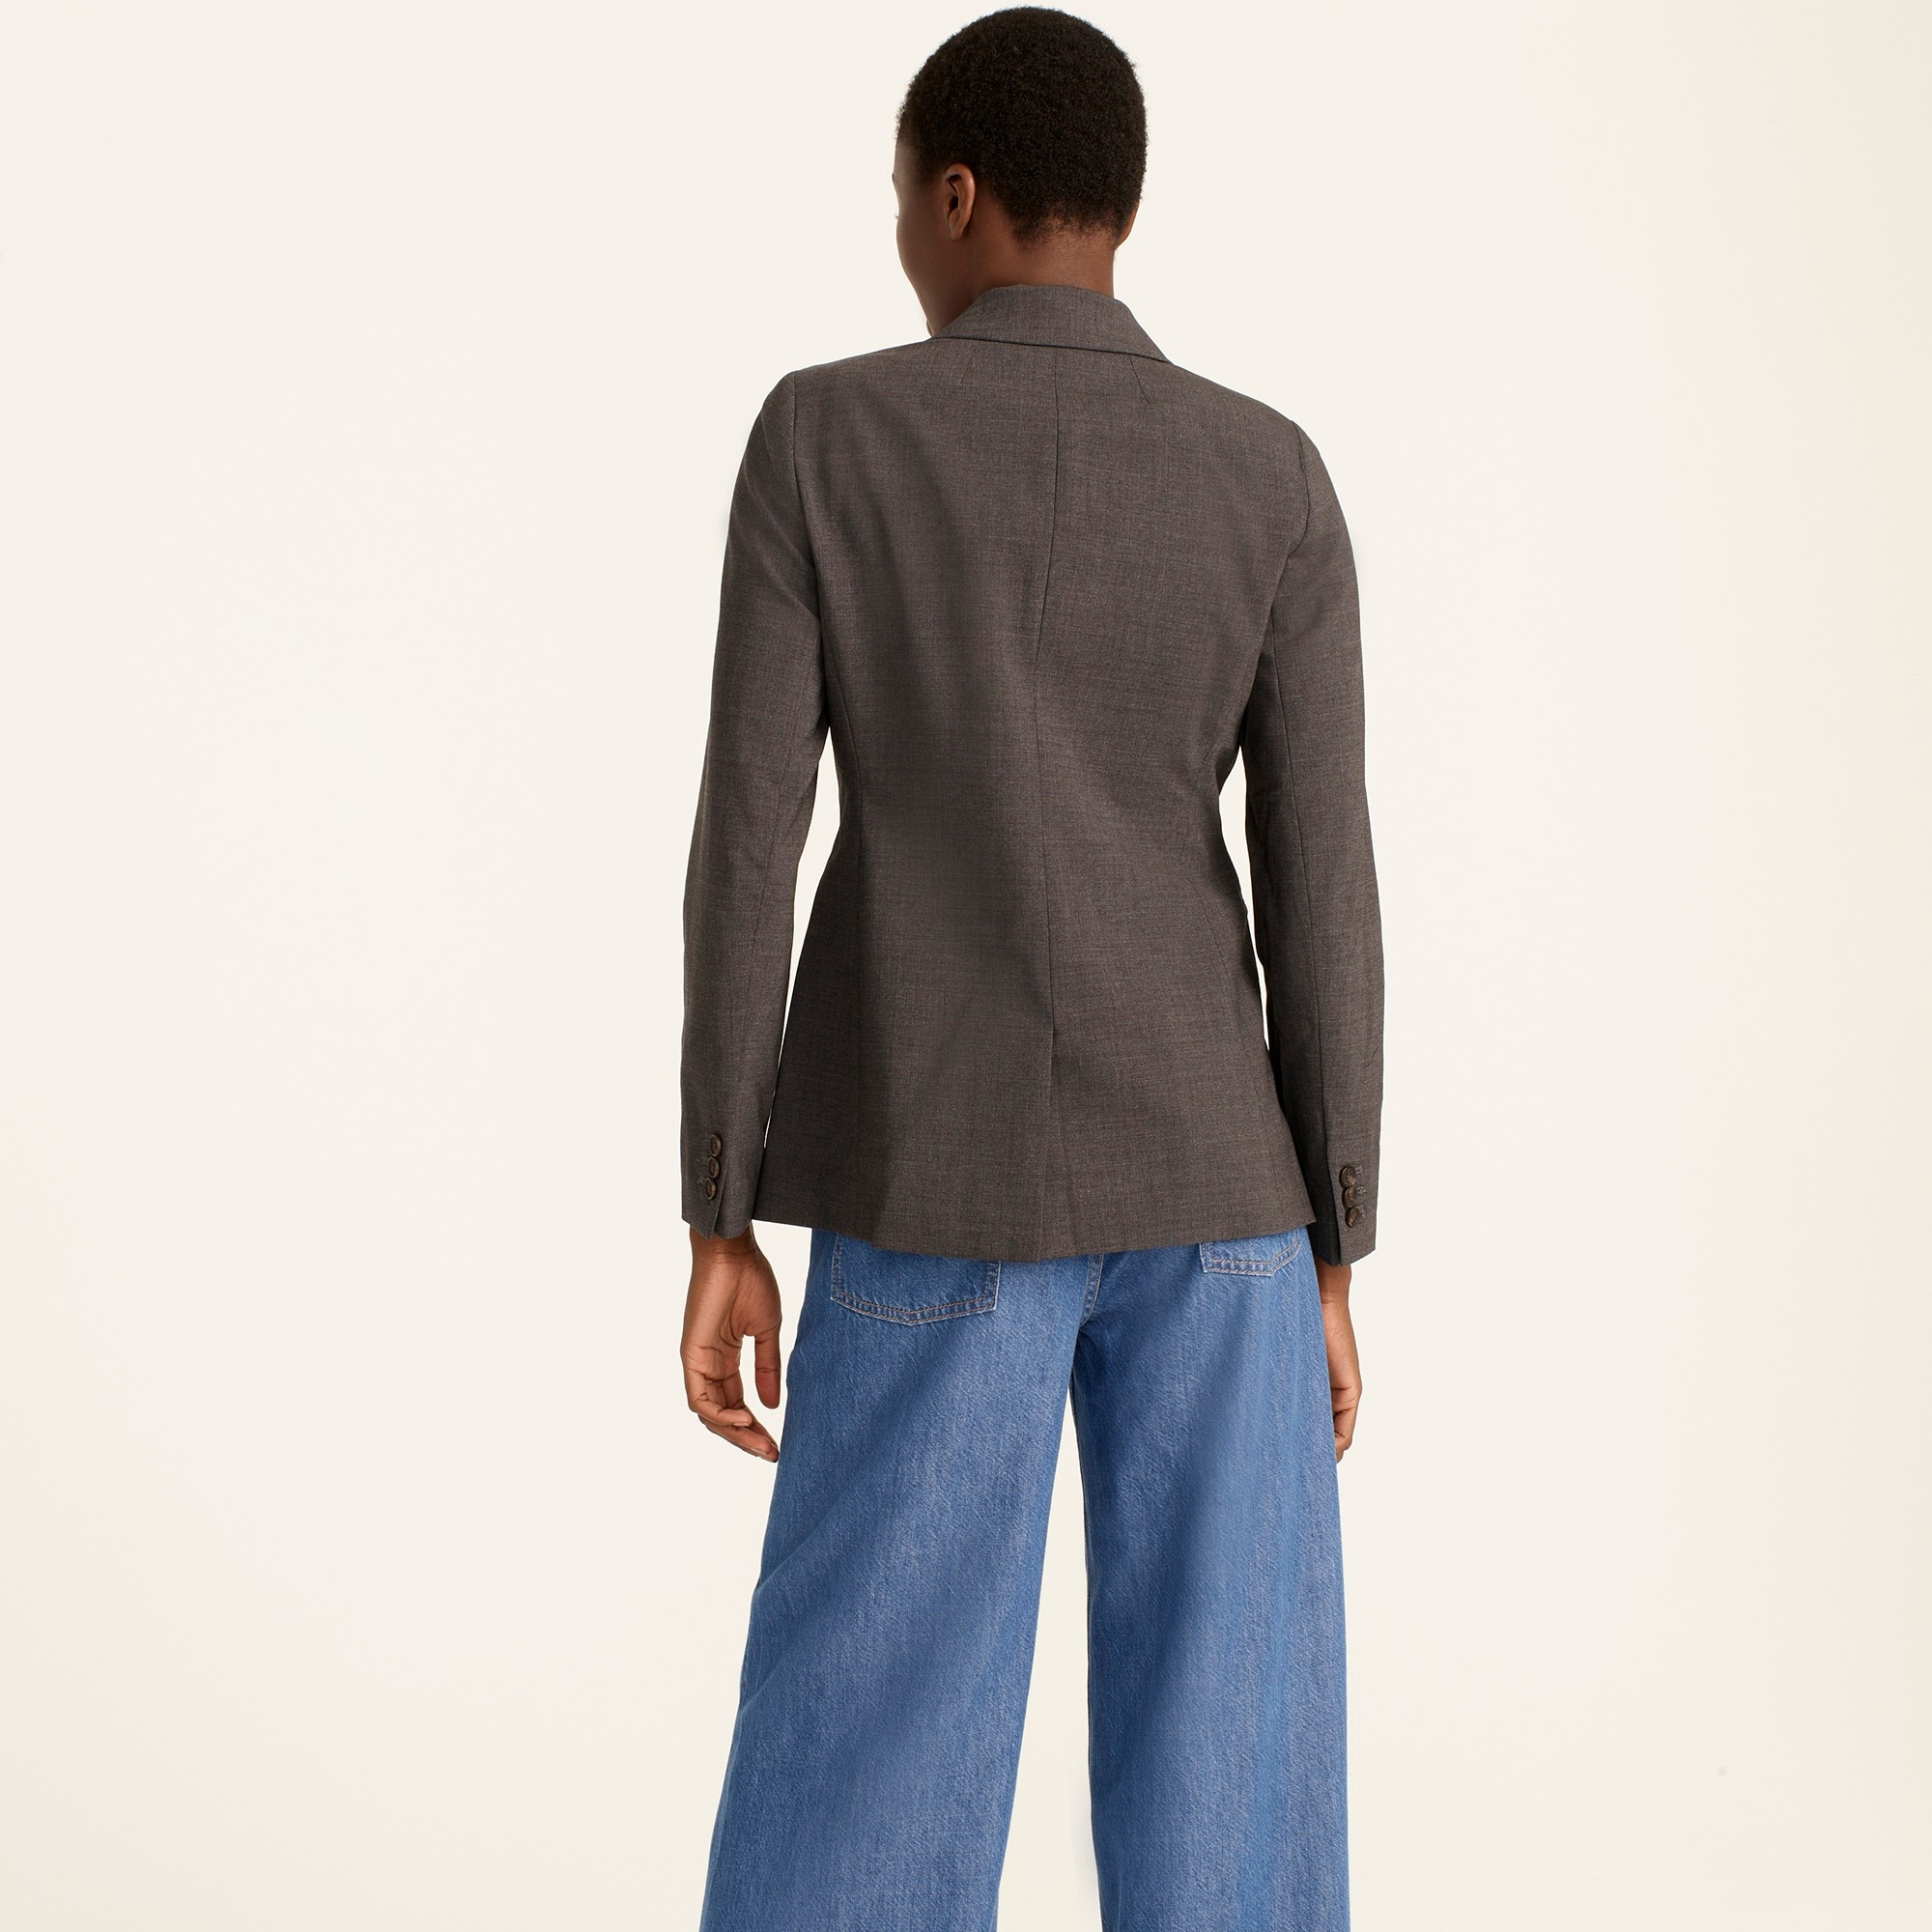 Image 3 for Parke blazer in Italian stretch wool